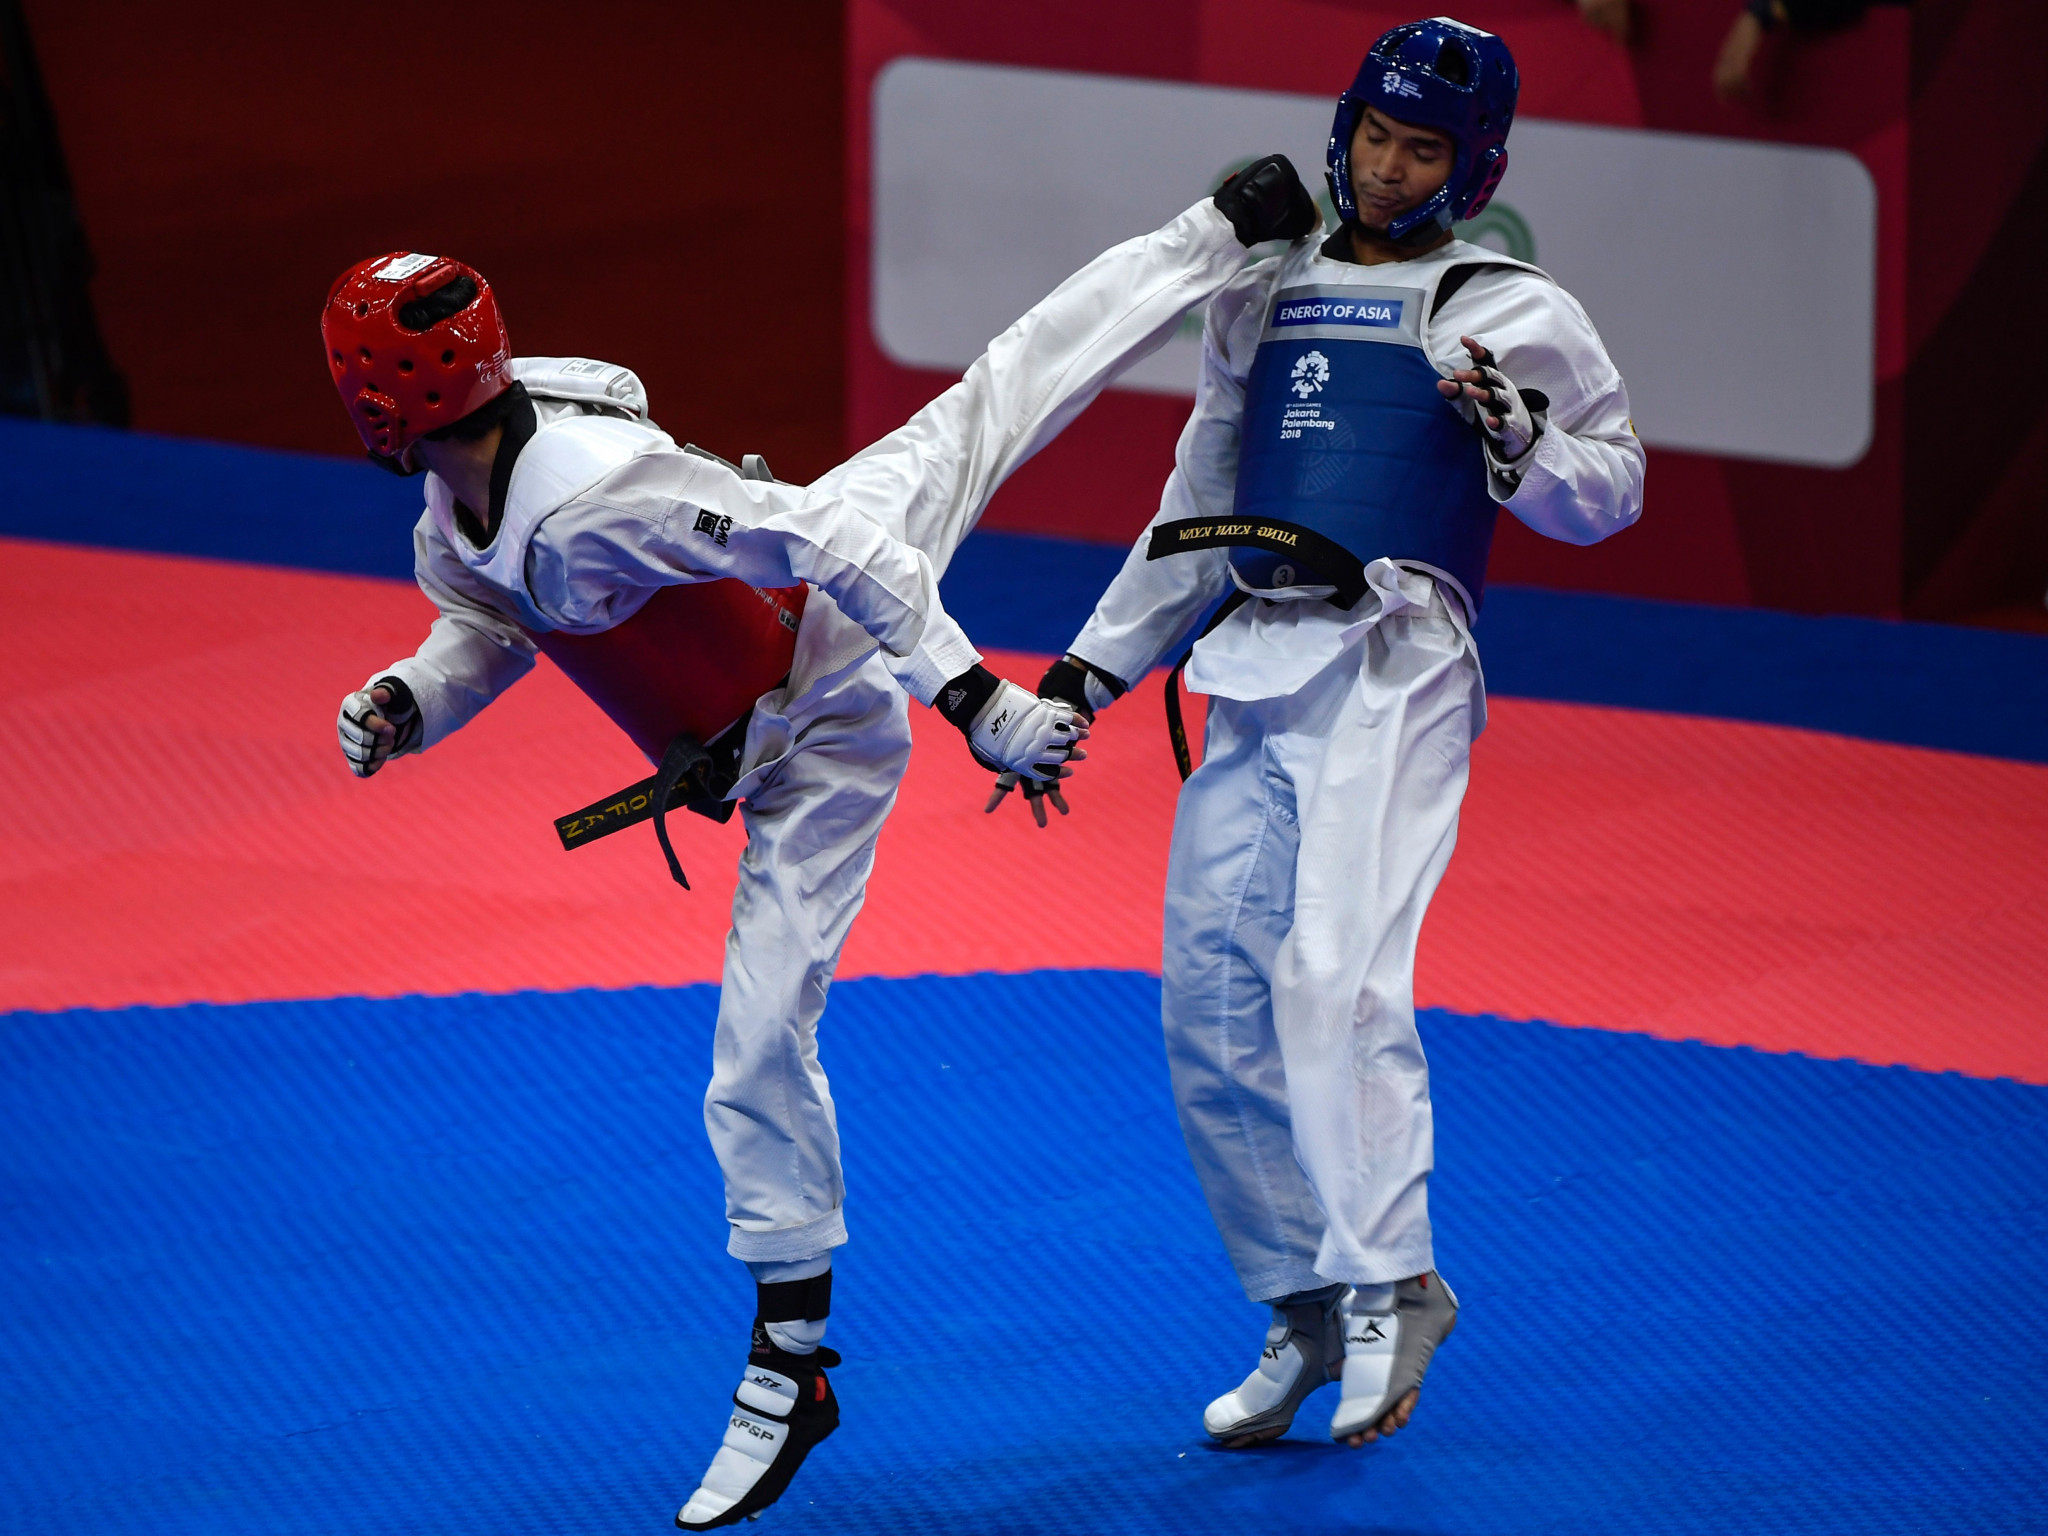 Haroon Khan, in red, competes at the 2018 Asian Games ©Getty Images